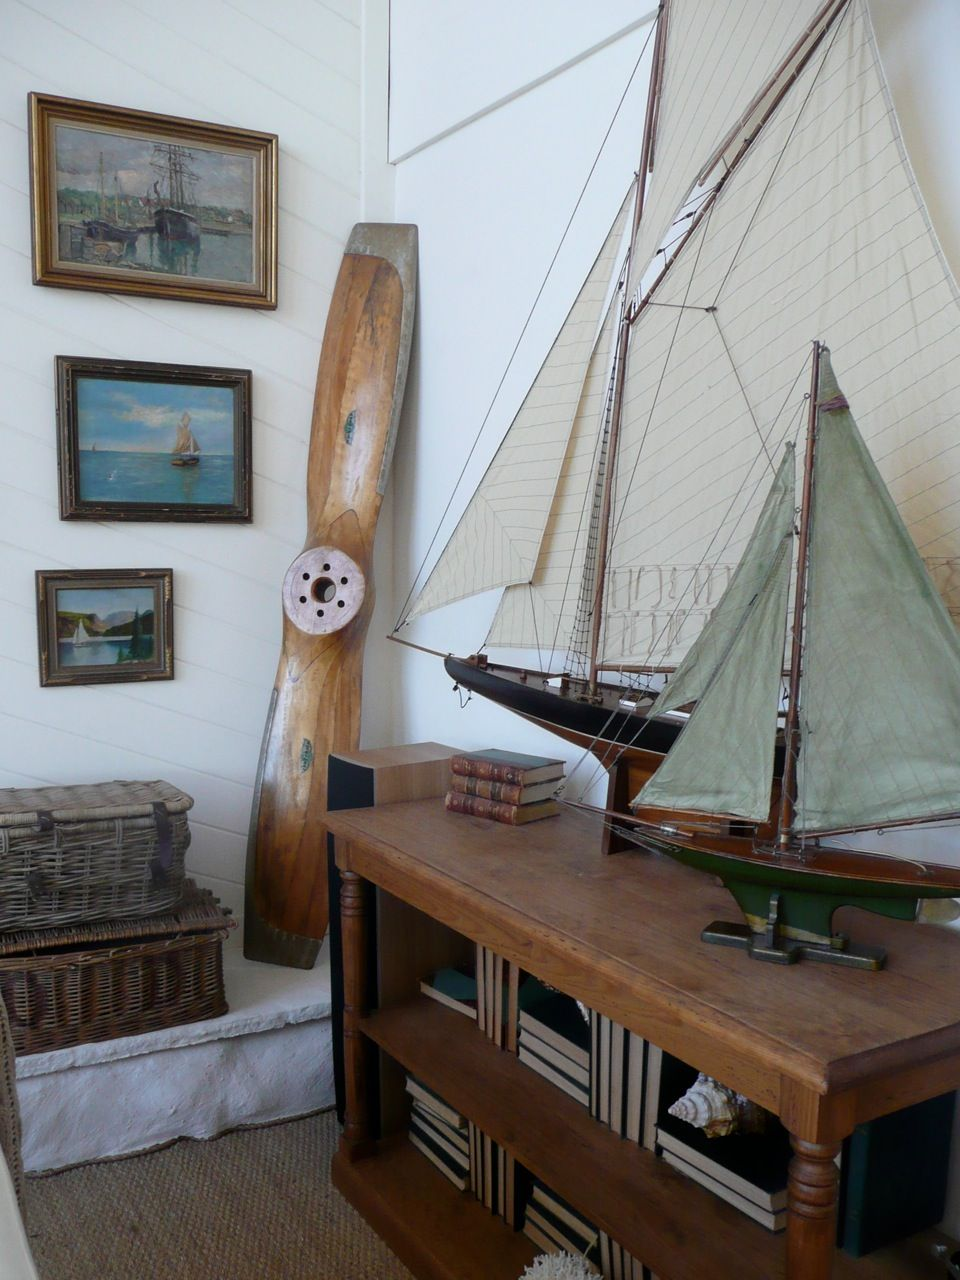 Photo of Sailboats and vintage propellers, baskets, just lovely!